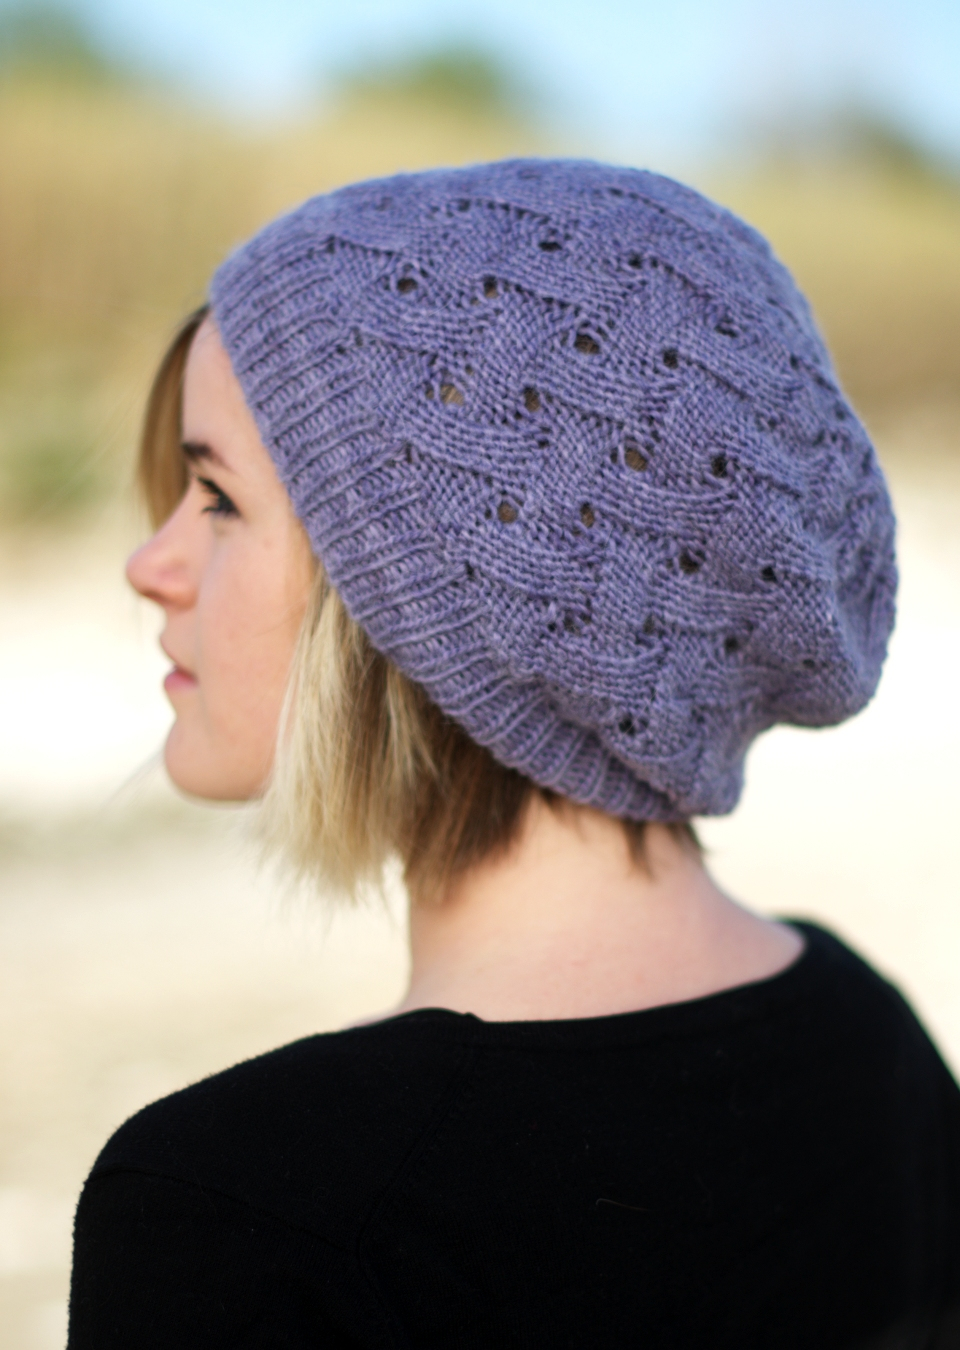 Free Knitting Patterns For Hats Uk Various Knitting Patterns The Best One Knitting Patterns For Hats